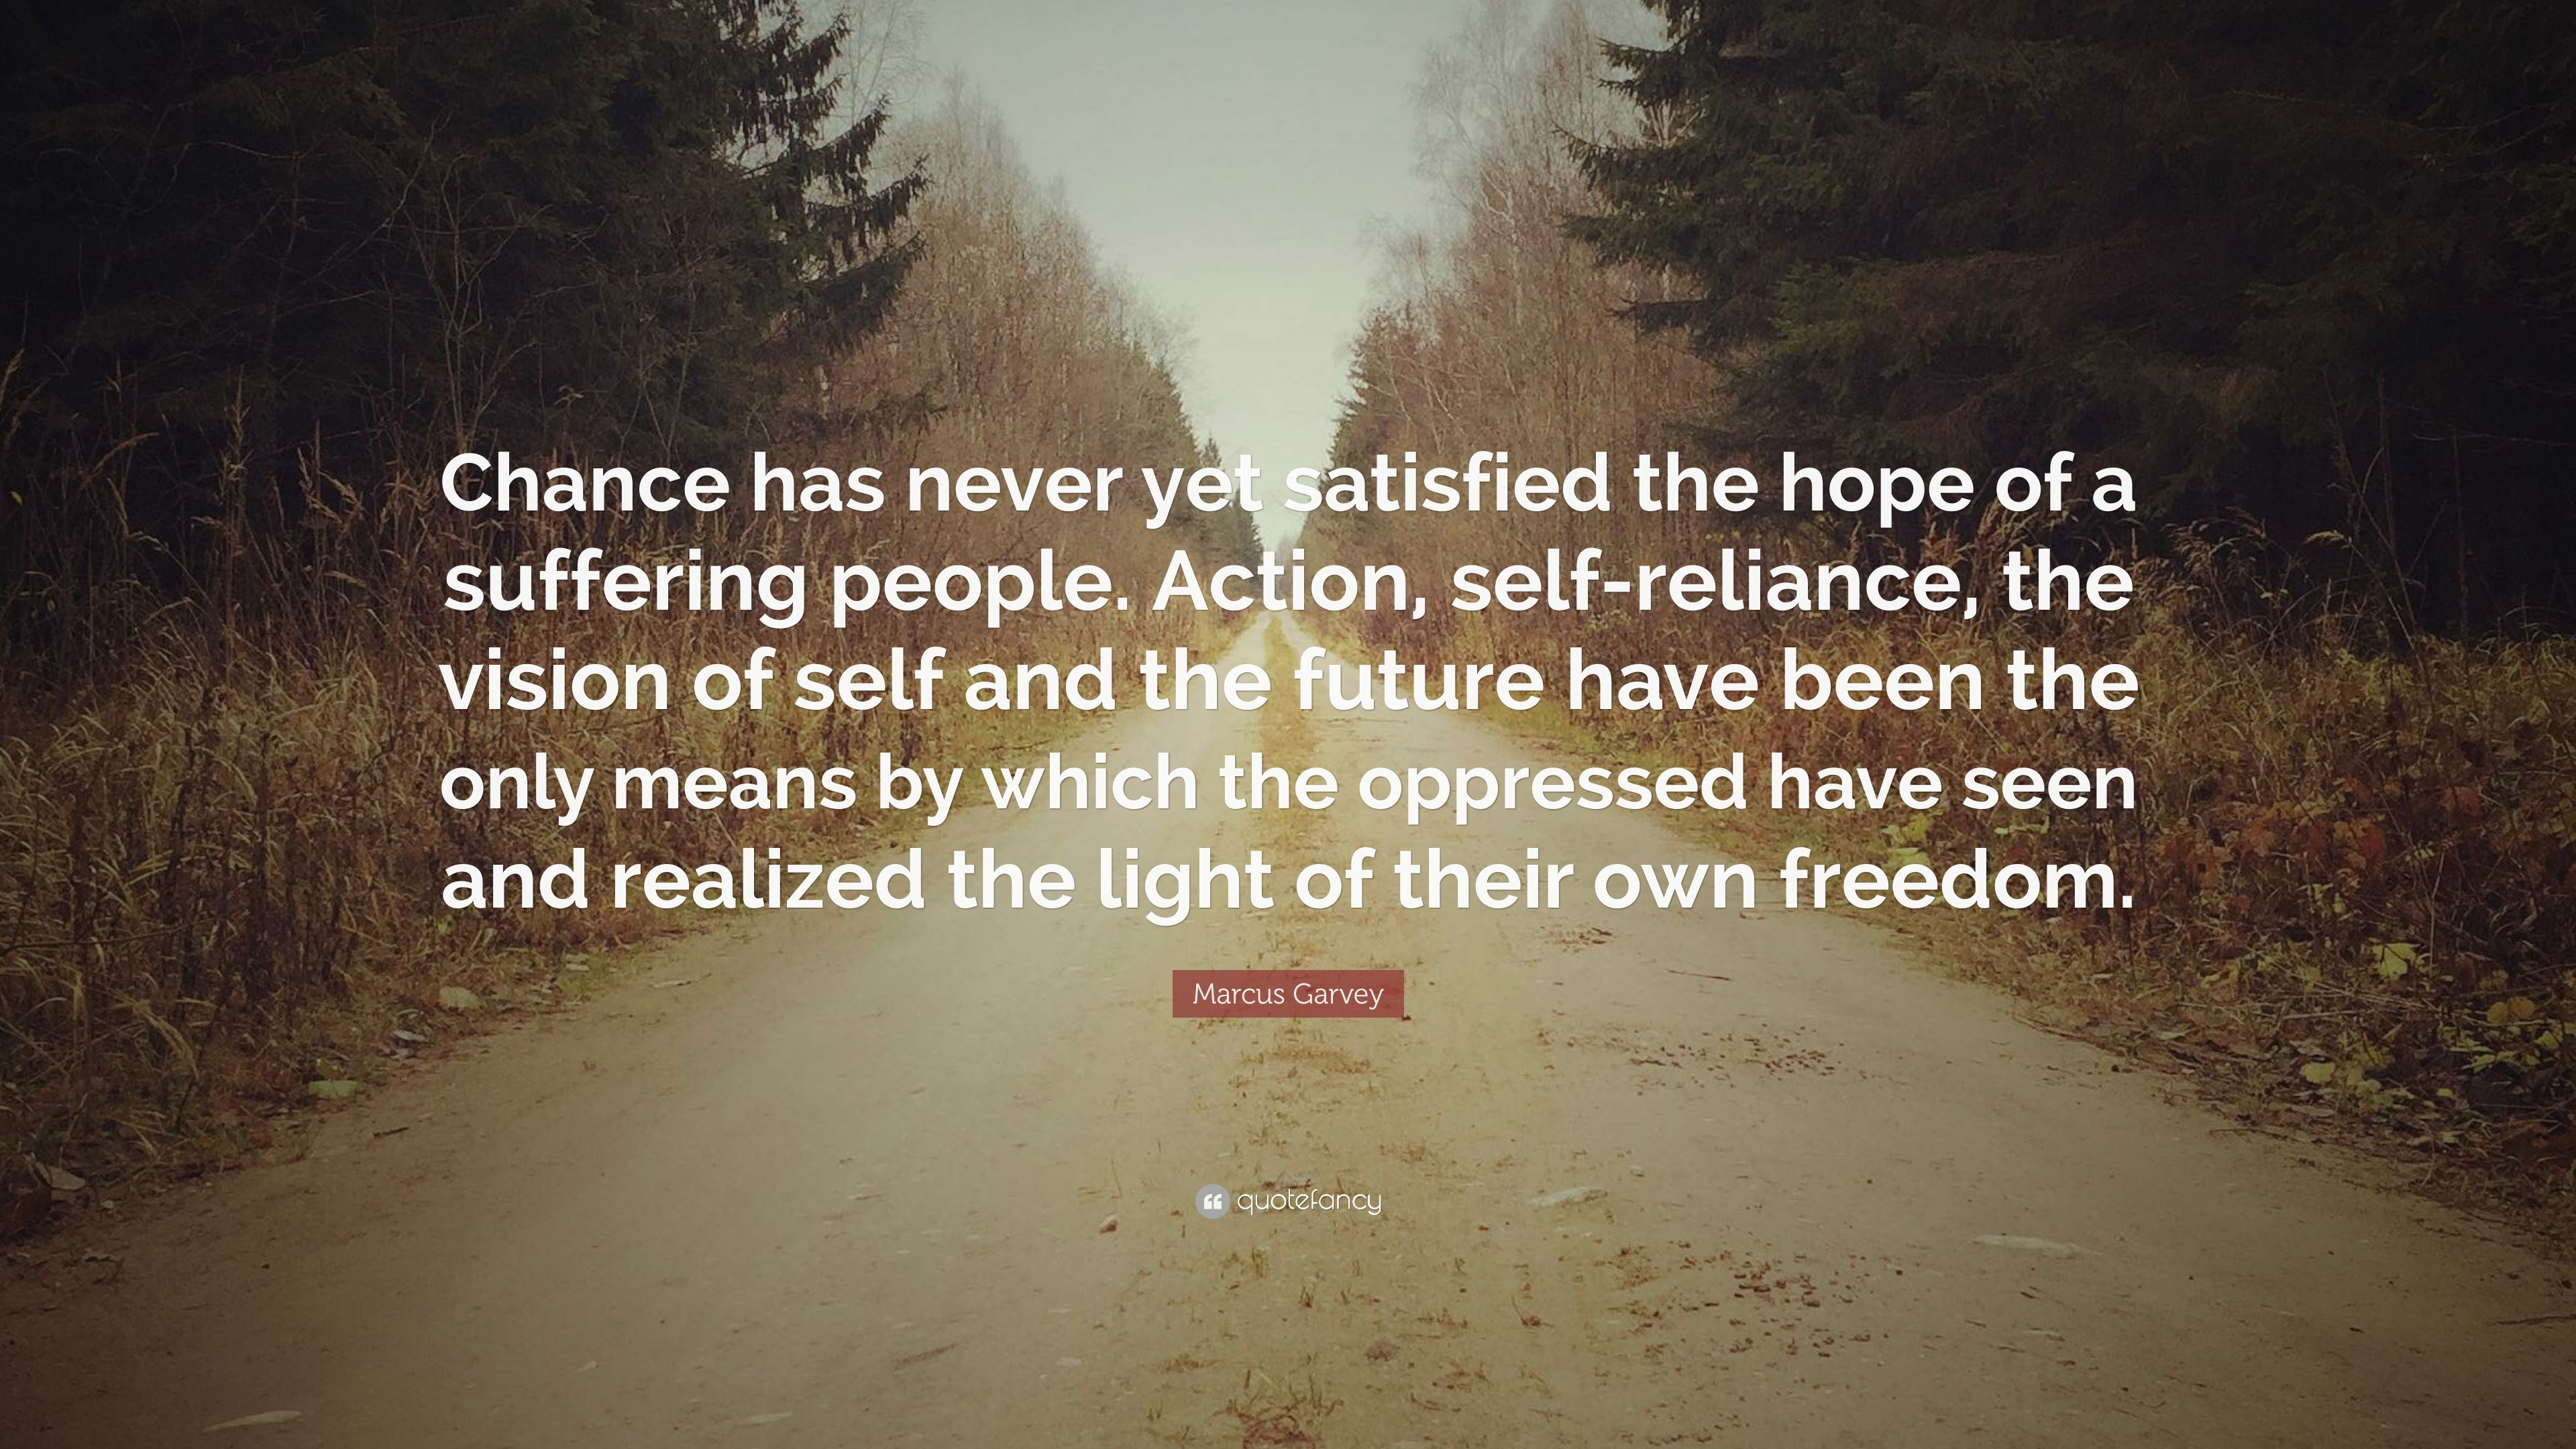 Marcus Garvey Quote Chance Has Never Yet Satisfied The Hope Of A